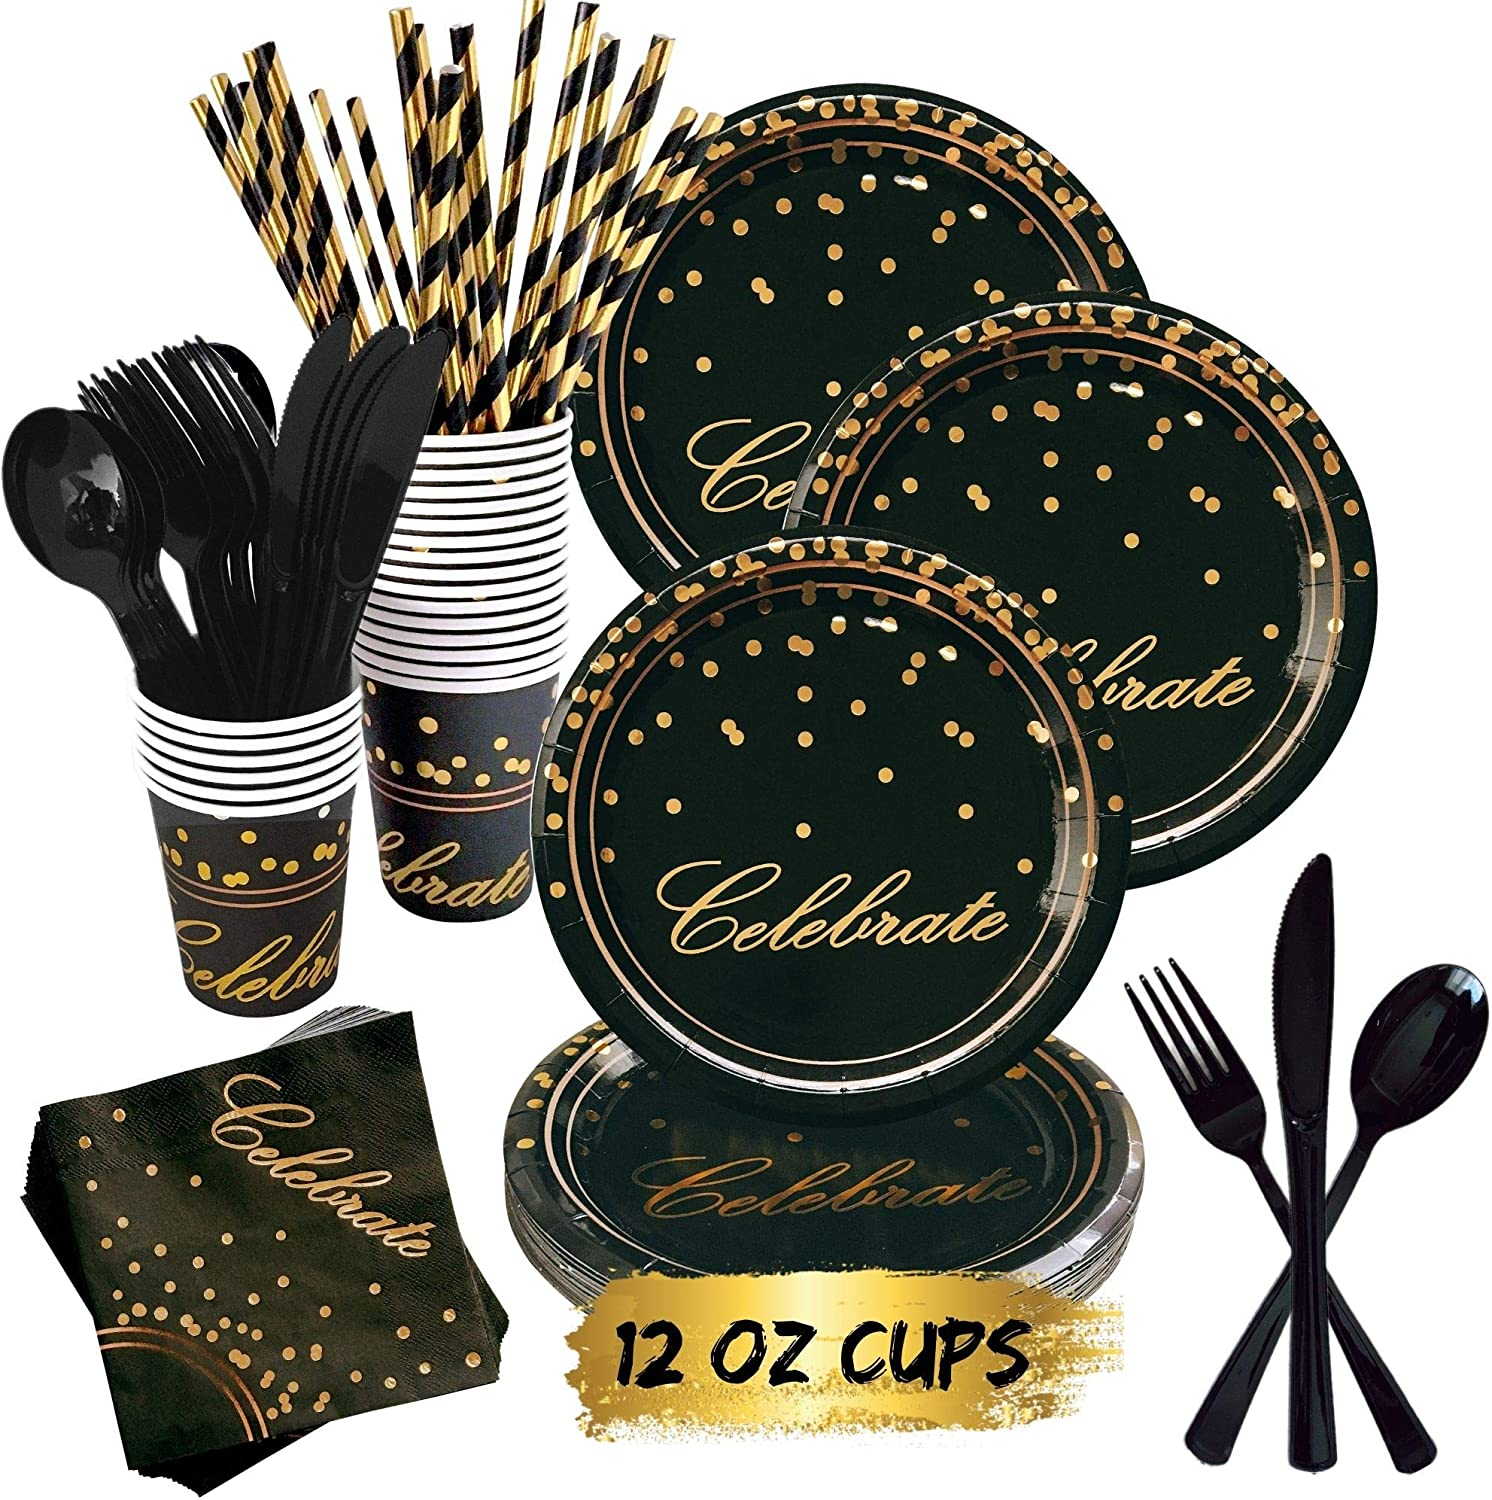 Serves 25 Black and Gold Party Supplies 101PCS Golden Dot Paper Party Tableware Includes 9Paper Plates Birthday 7Paper Plates 12oz Cups Banner Cocktail Party for Graduation Napkins